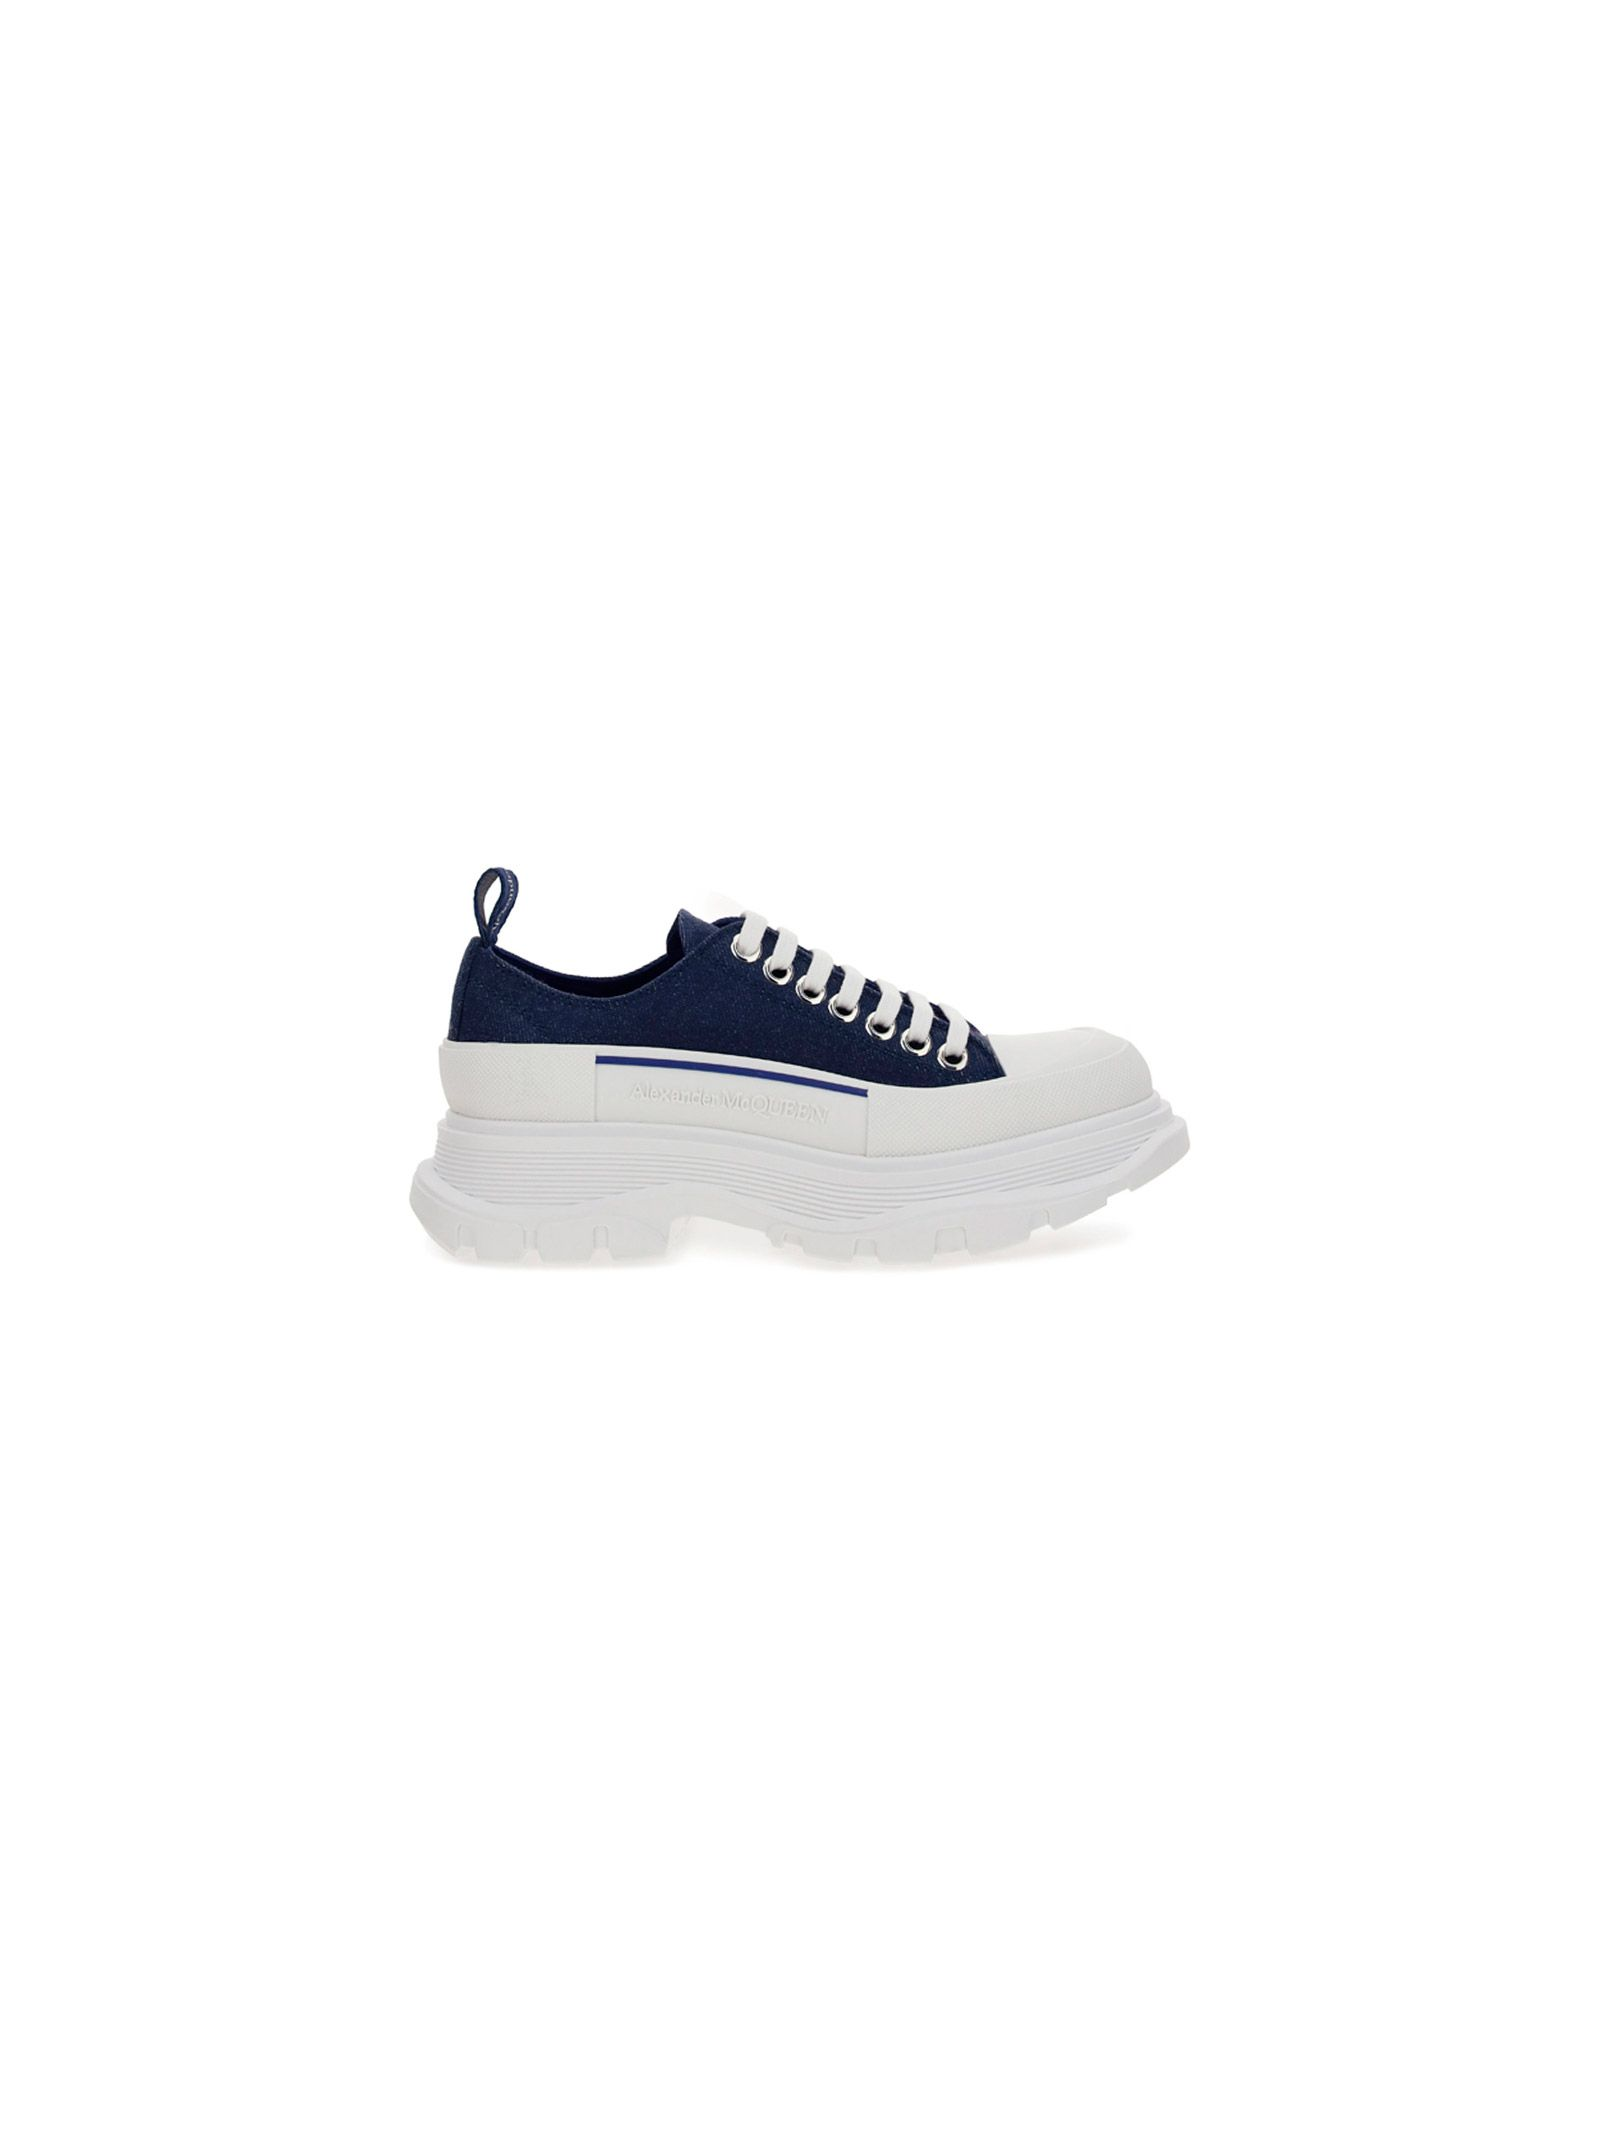 Alexander Mcqueen ALEXANDER MCQUEEN WOMEN'S 611705W4PD14177 BLUE OTHER MATERIALS SNEAKERS